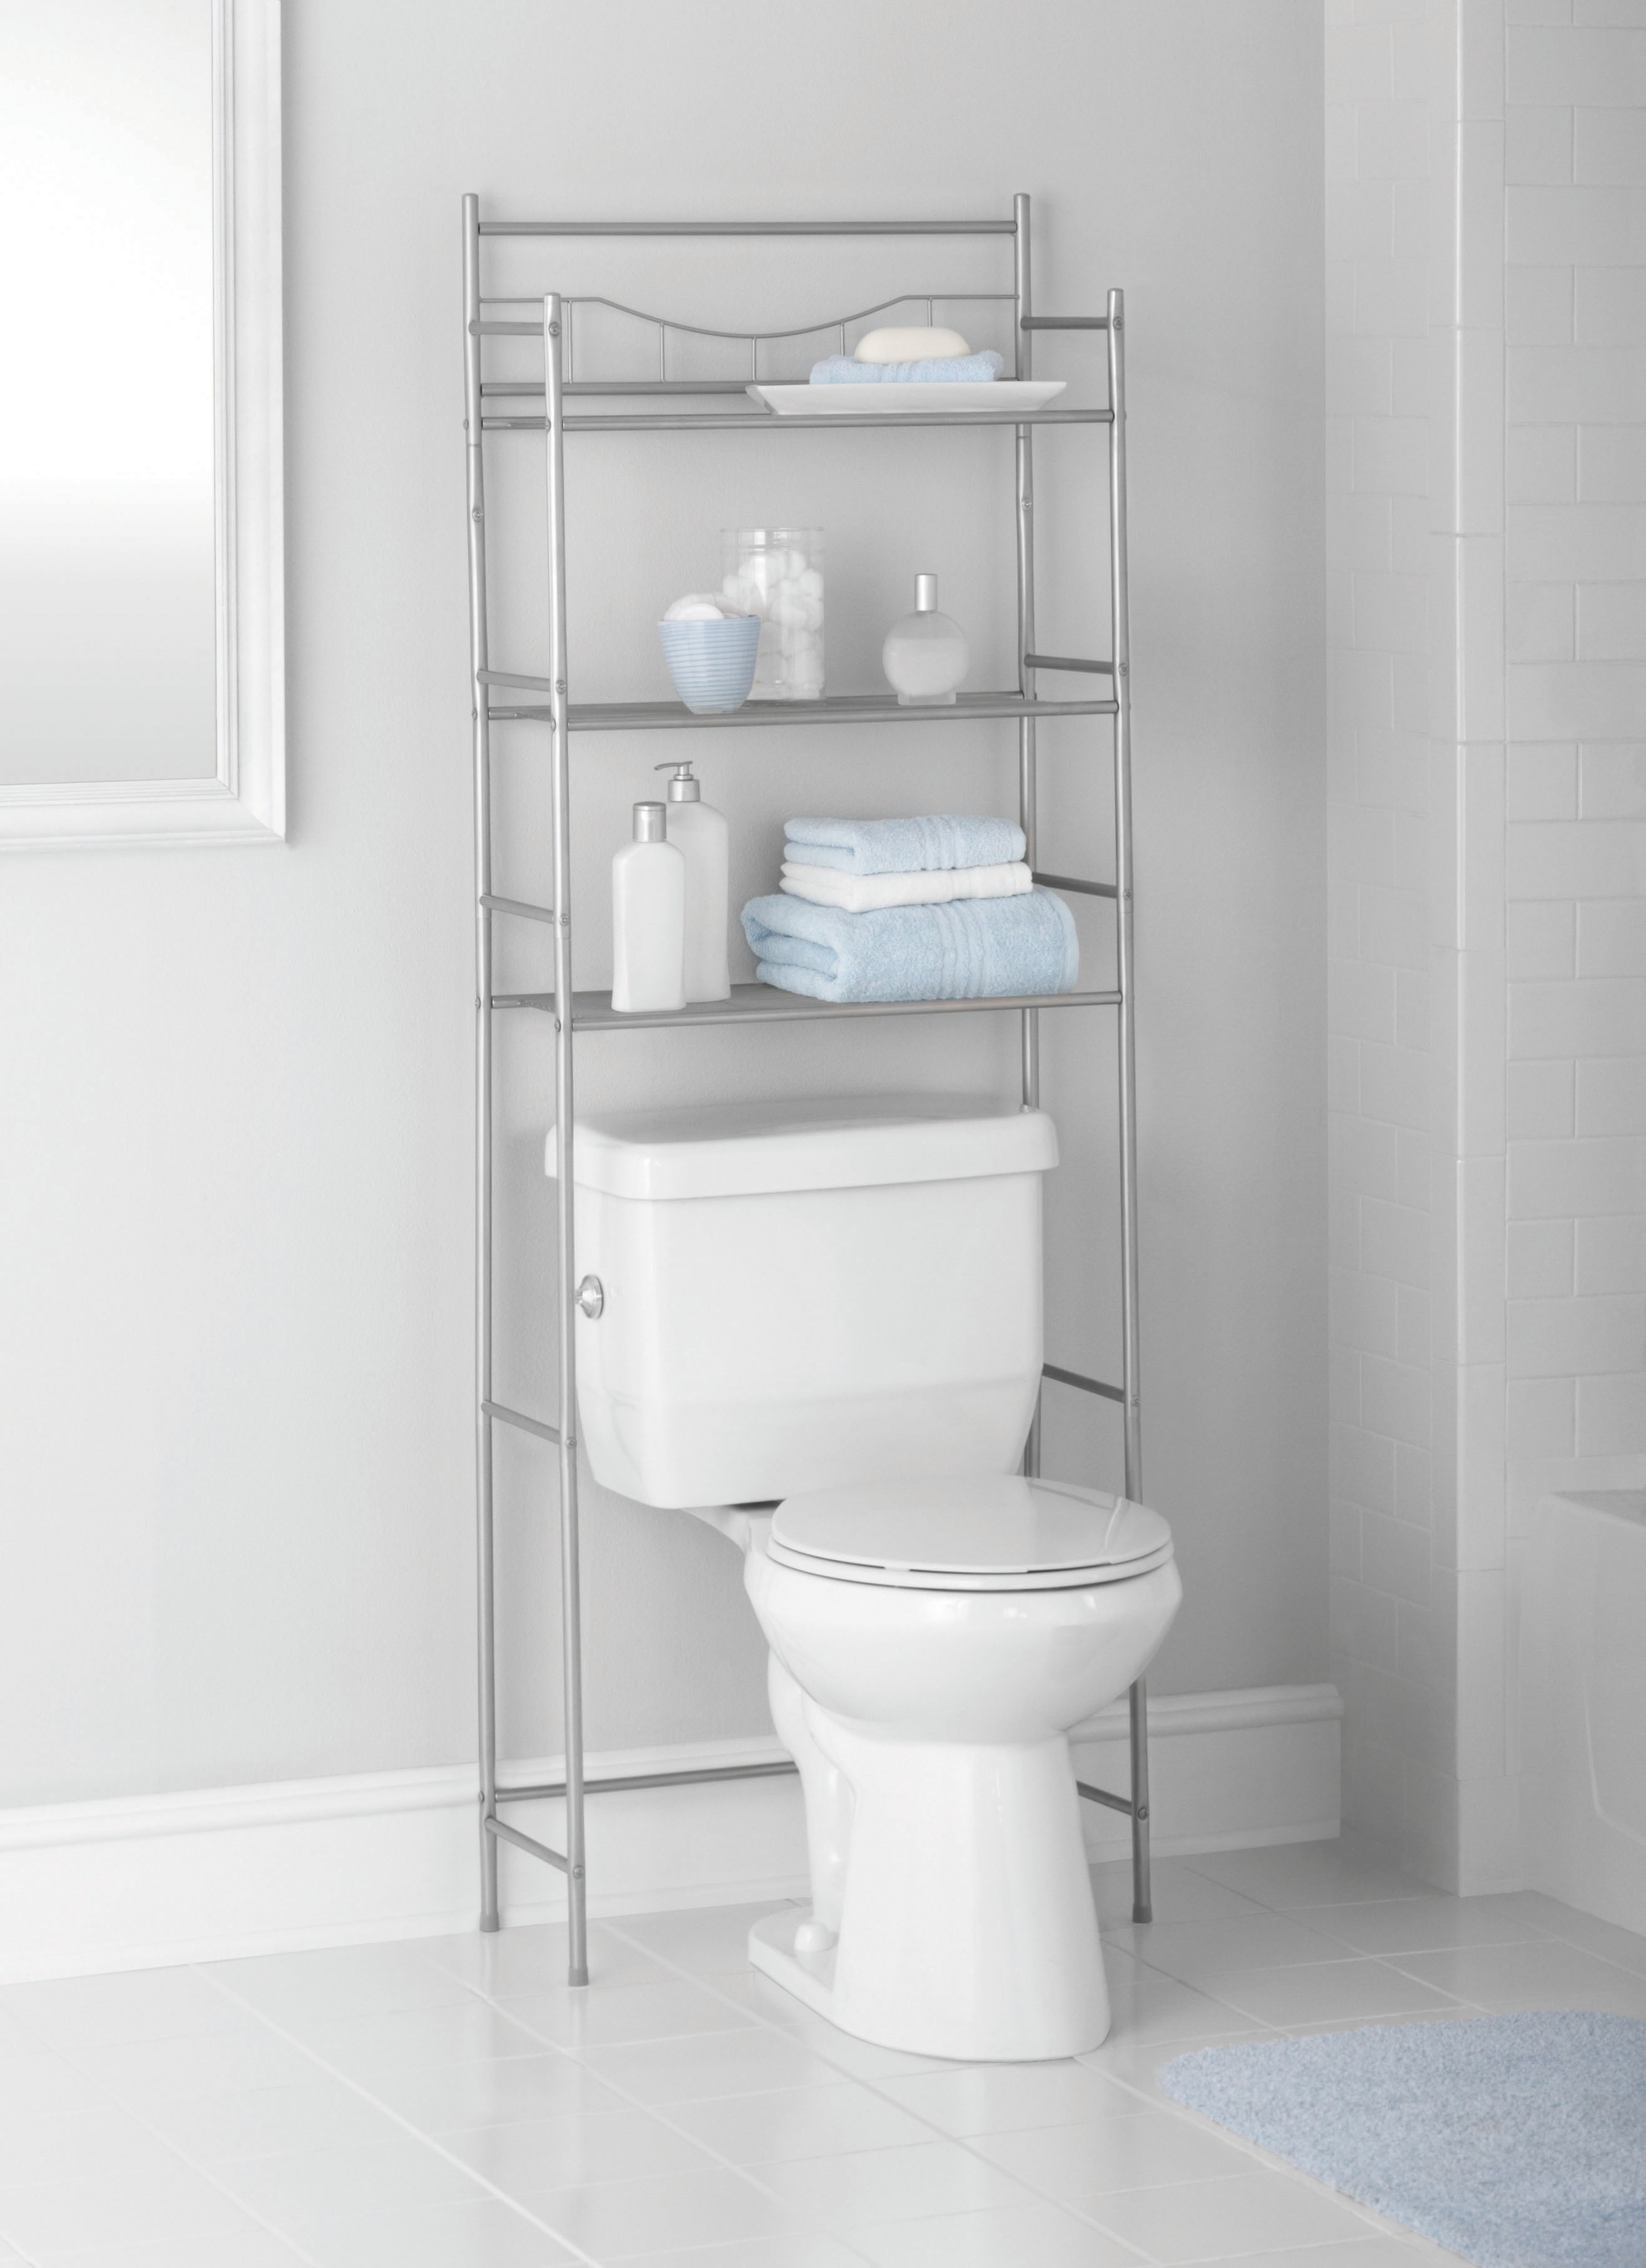 3 Shelf Over The Toilet Bathroom Space Saver Towel Storage Rack Organizer White